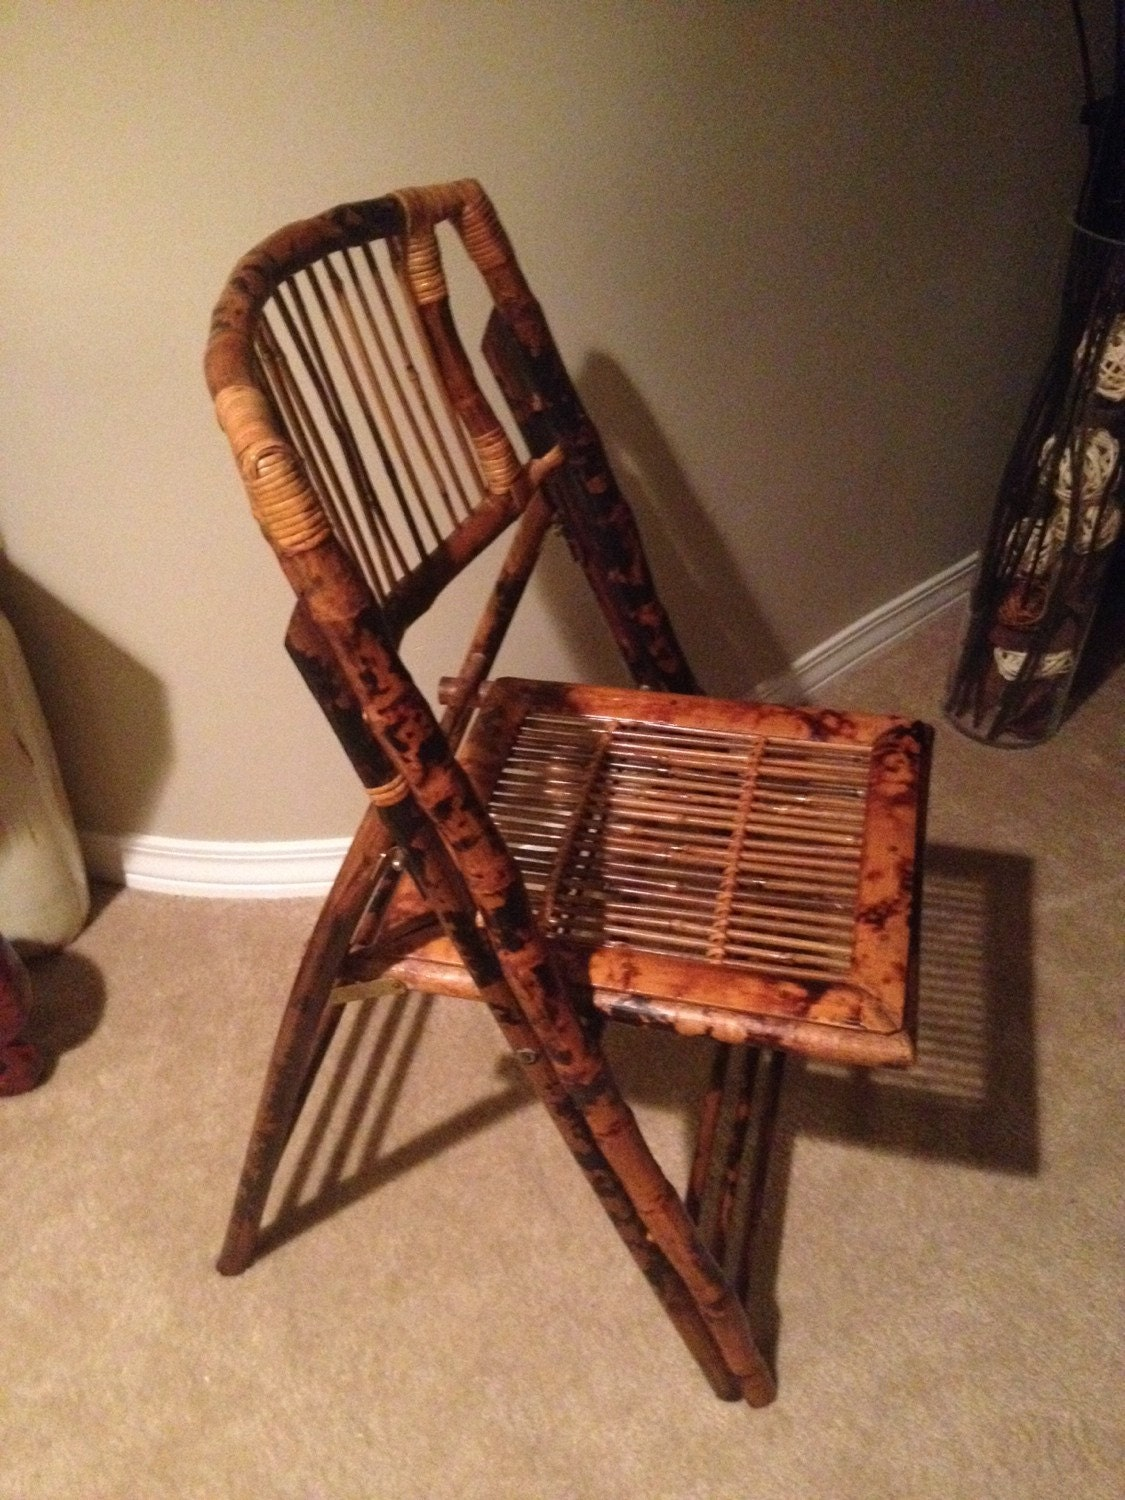 SALE Vintage Bamboo Wicker Wood Folding Chair